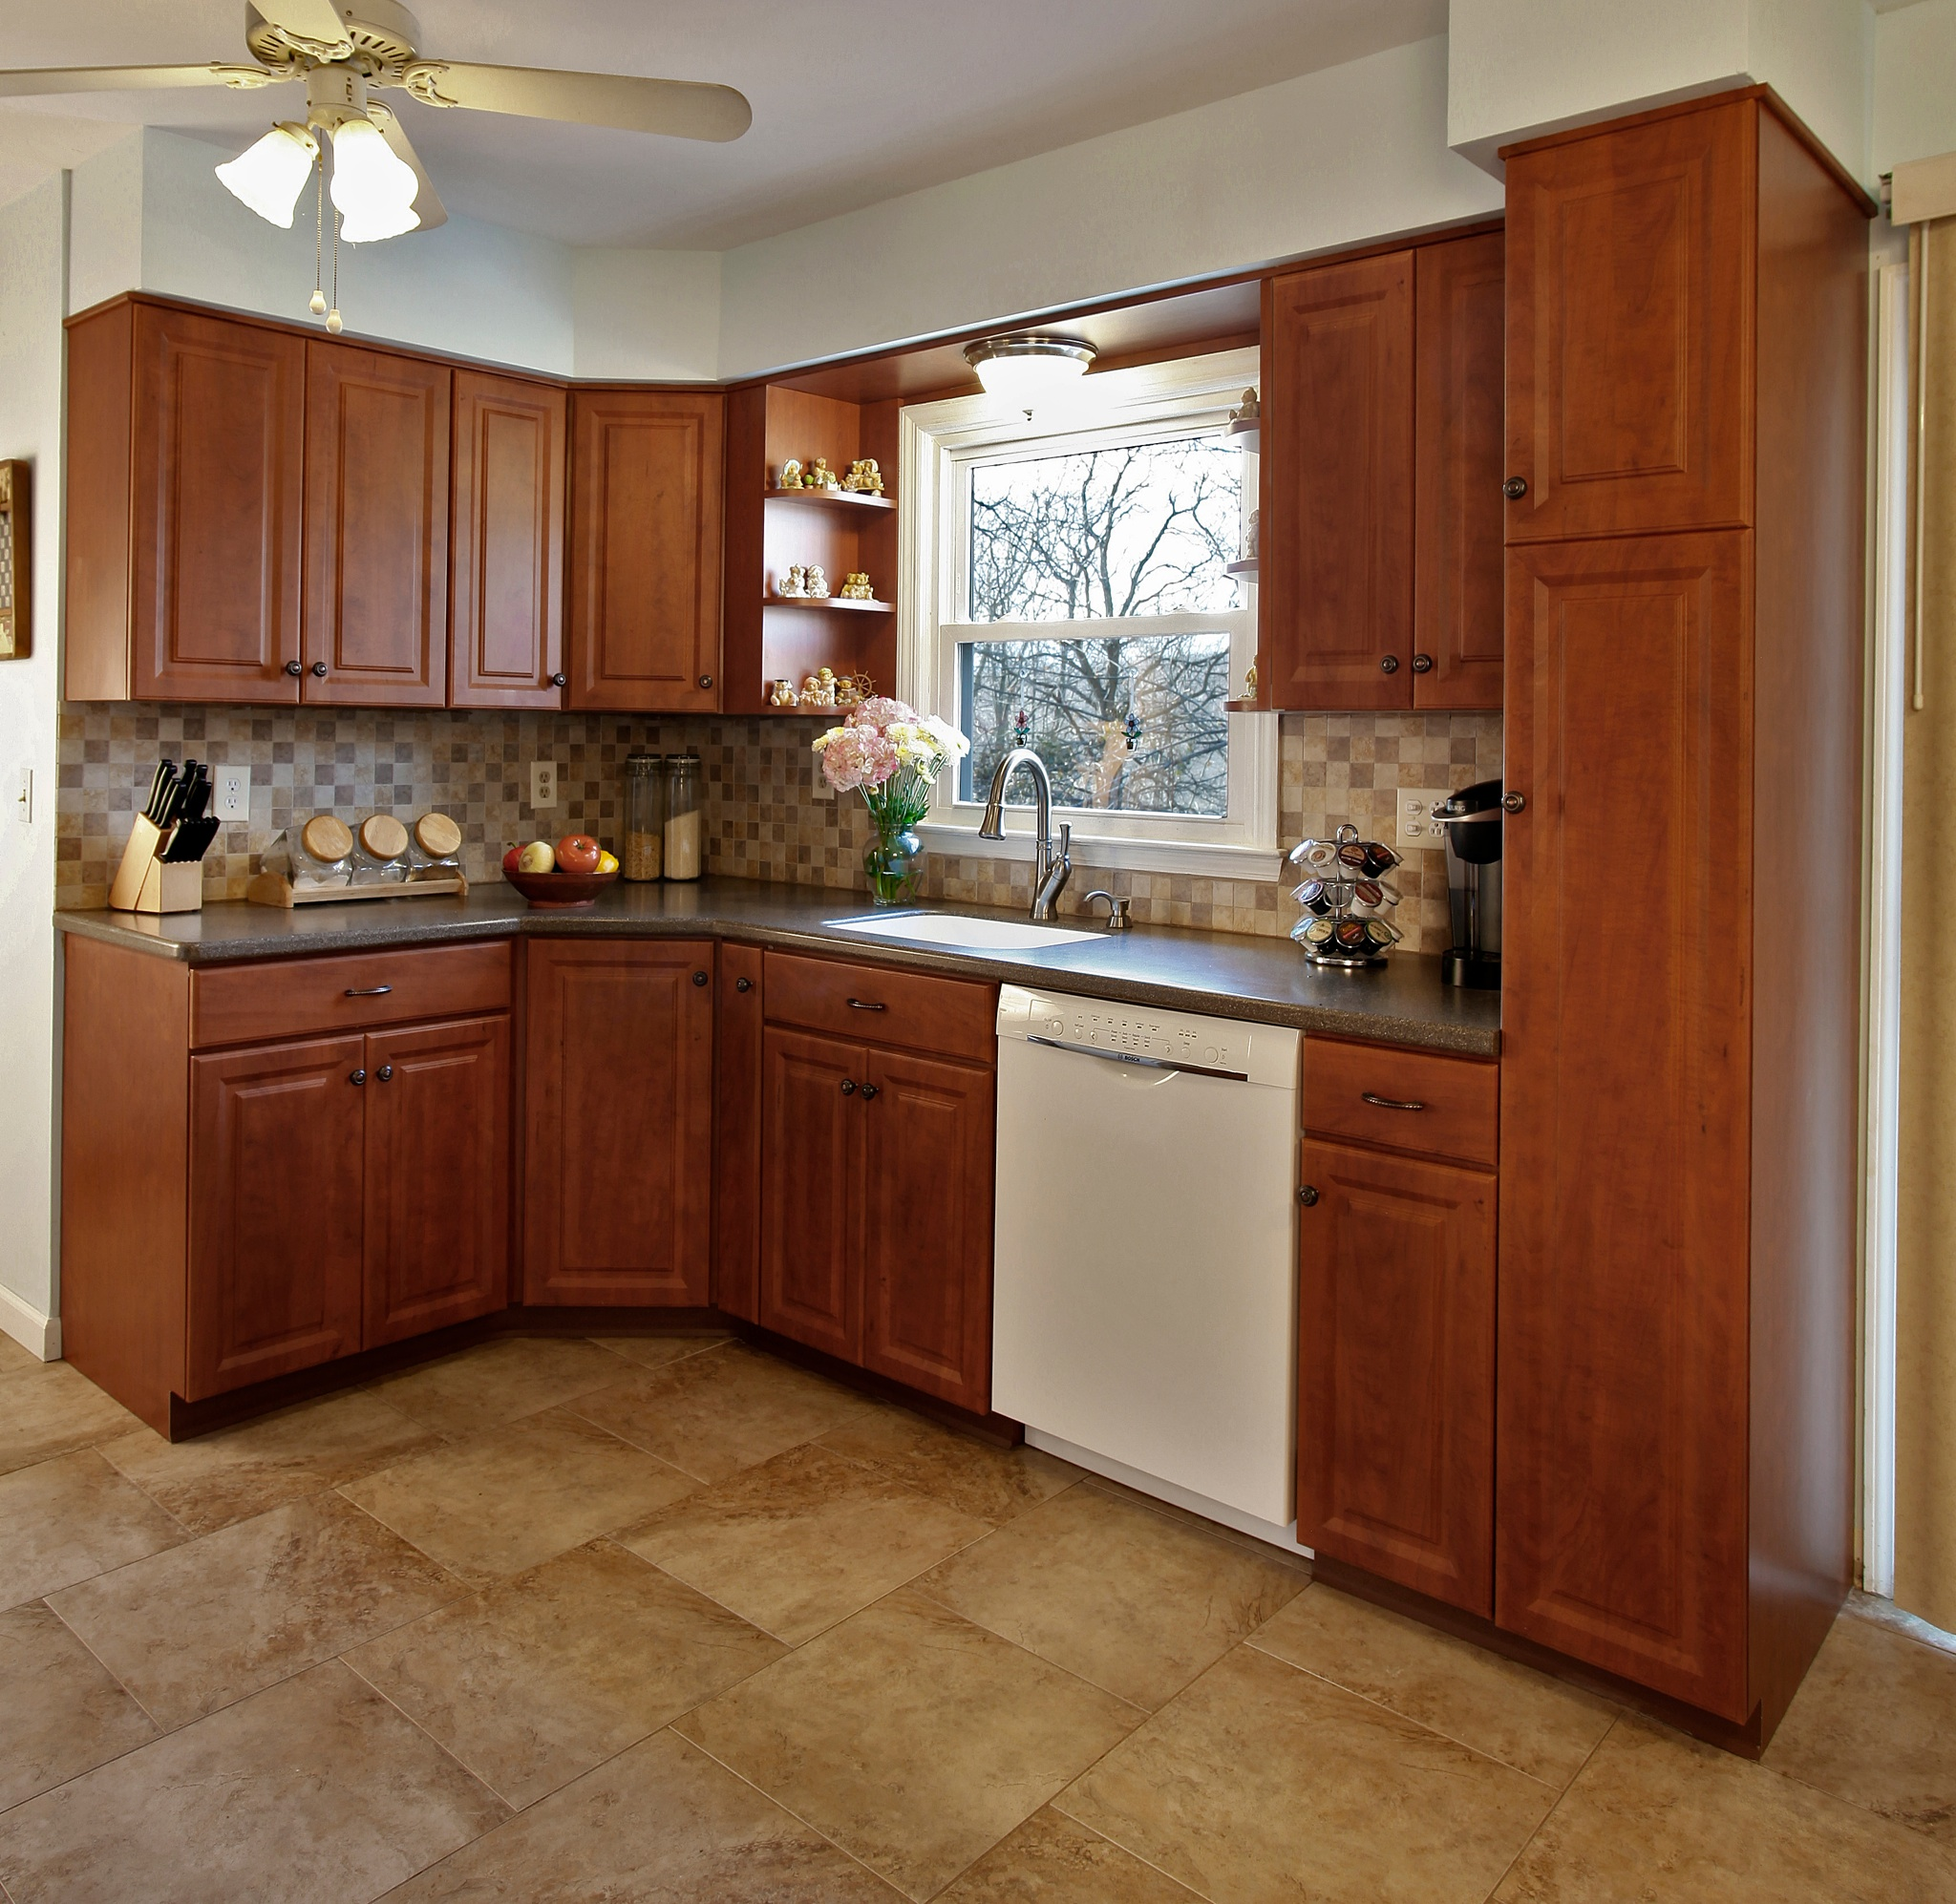 Types Of Cabinets For Kitchen: Differences Between 6 Common Types Of Cabinet Doors